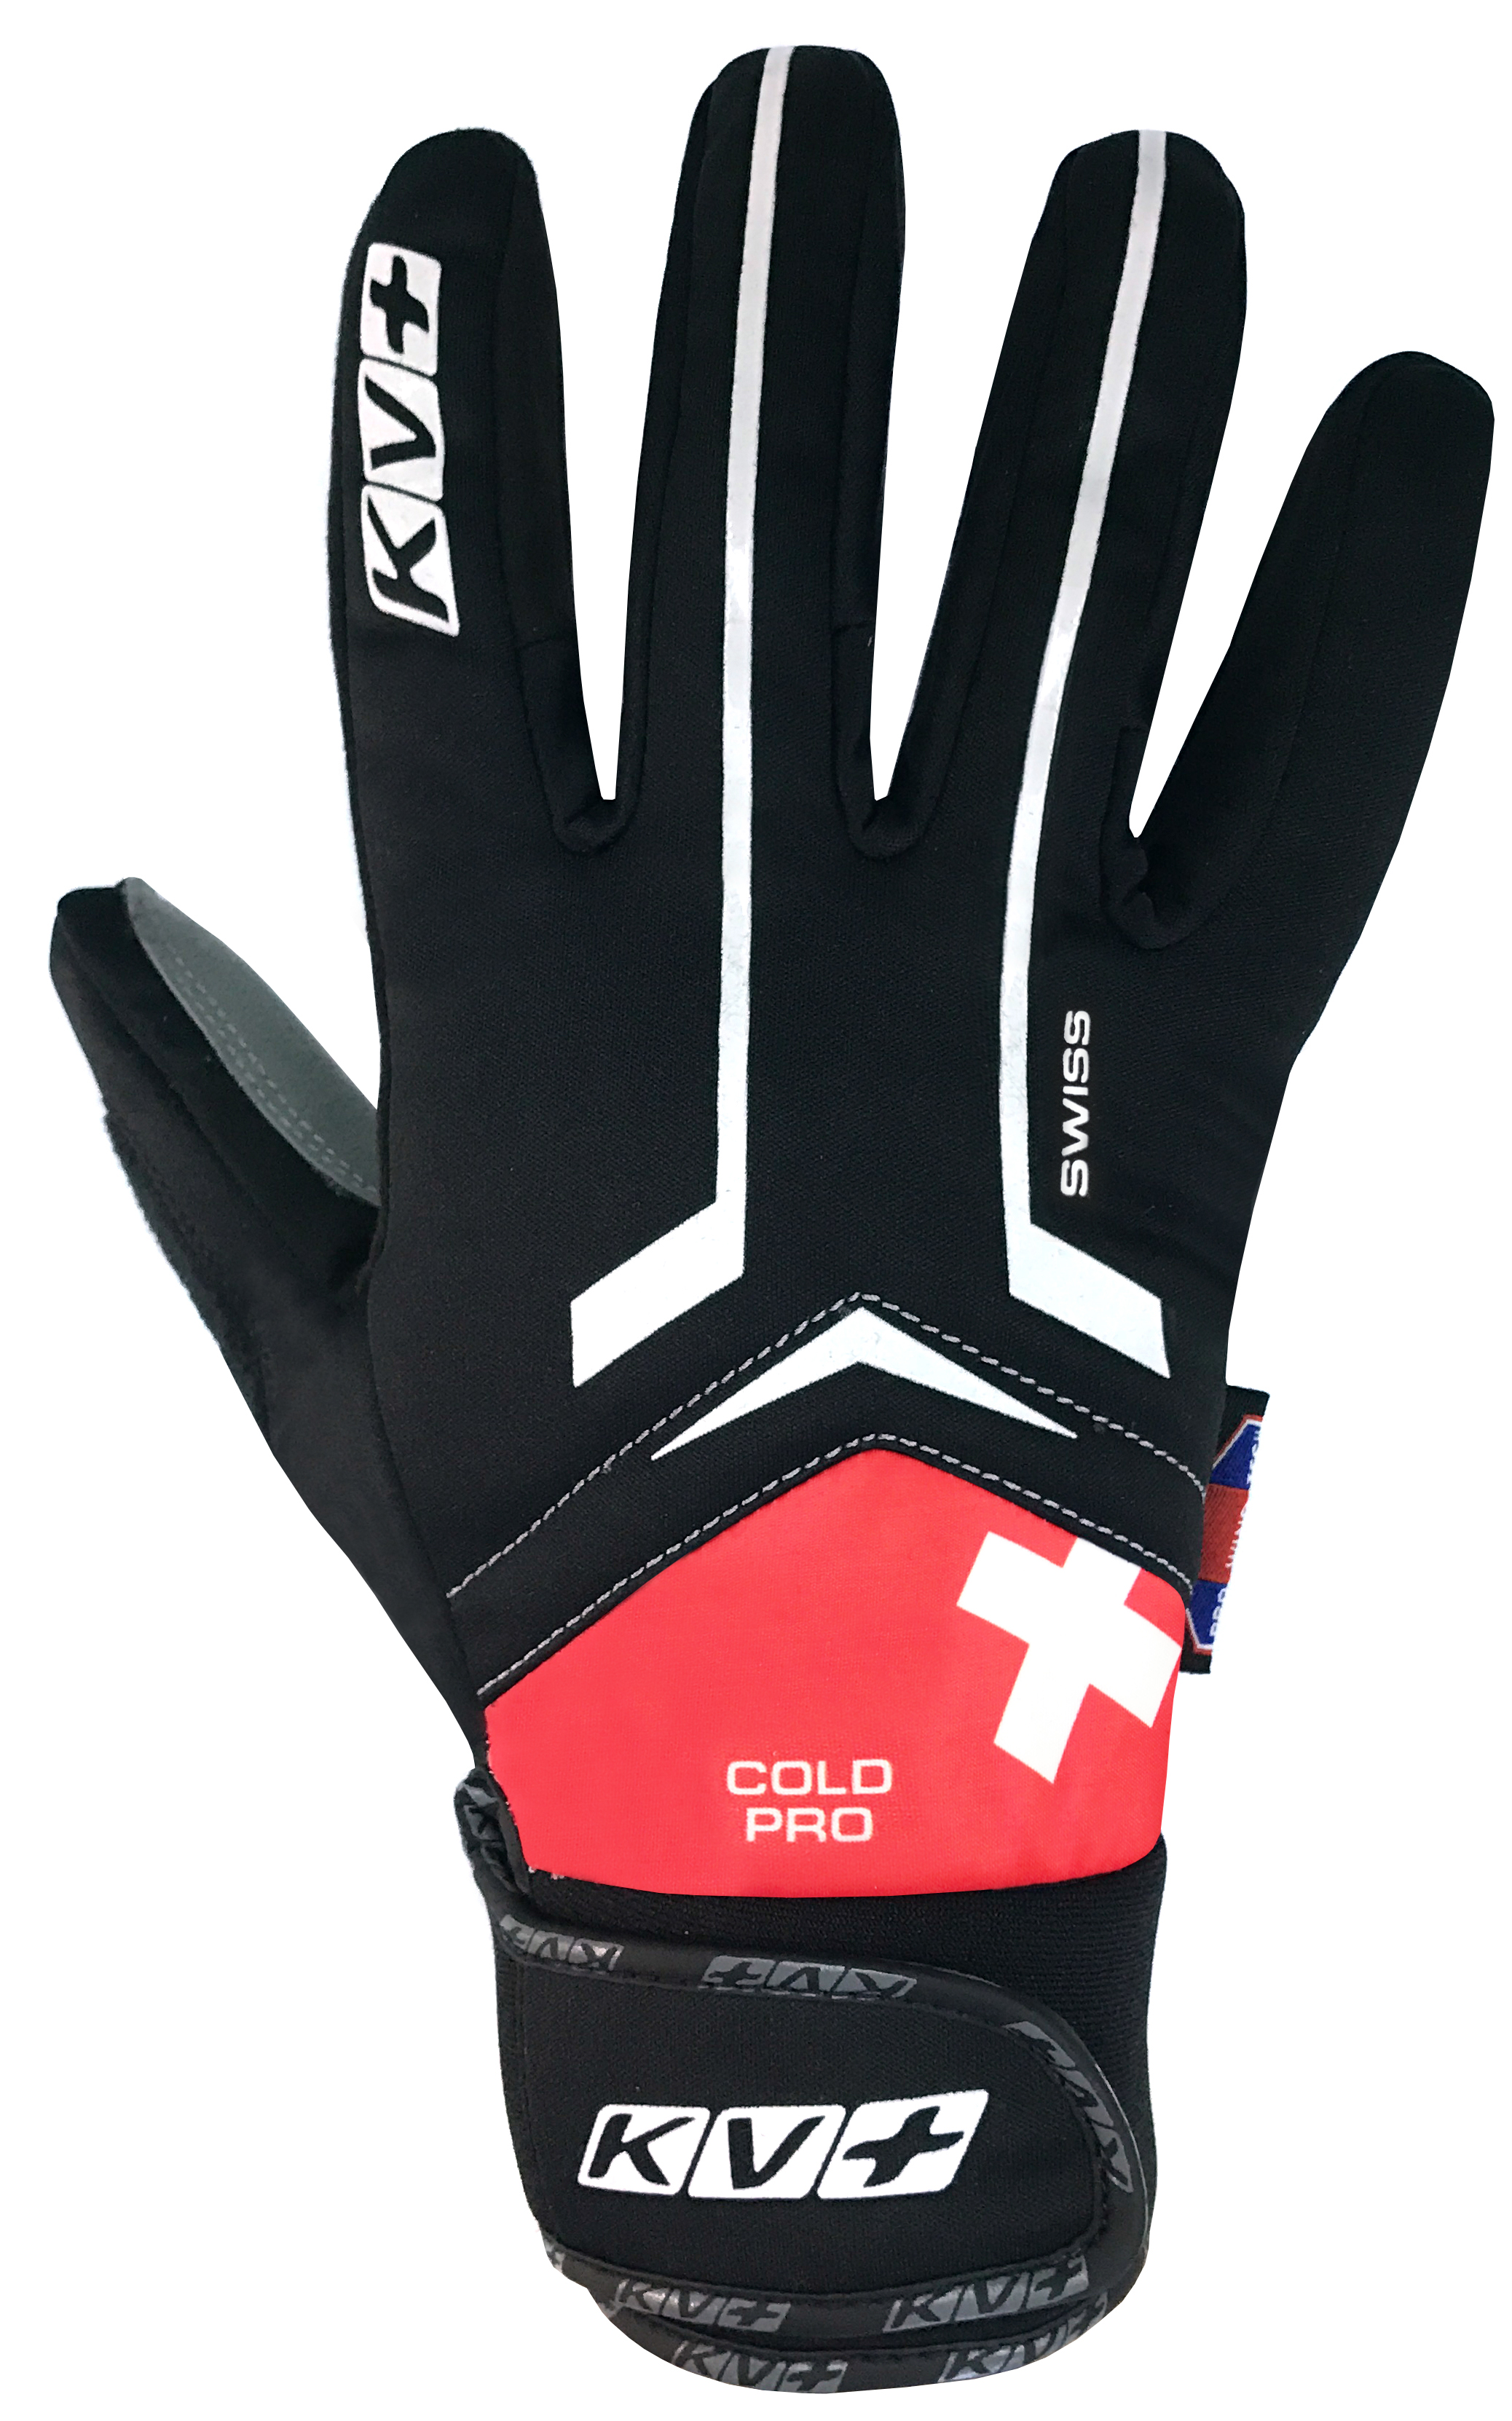 náhled KV+ XC COLD PRO GLOVES WIND TECH SWISS – black/red 7G05-S